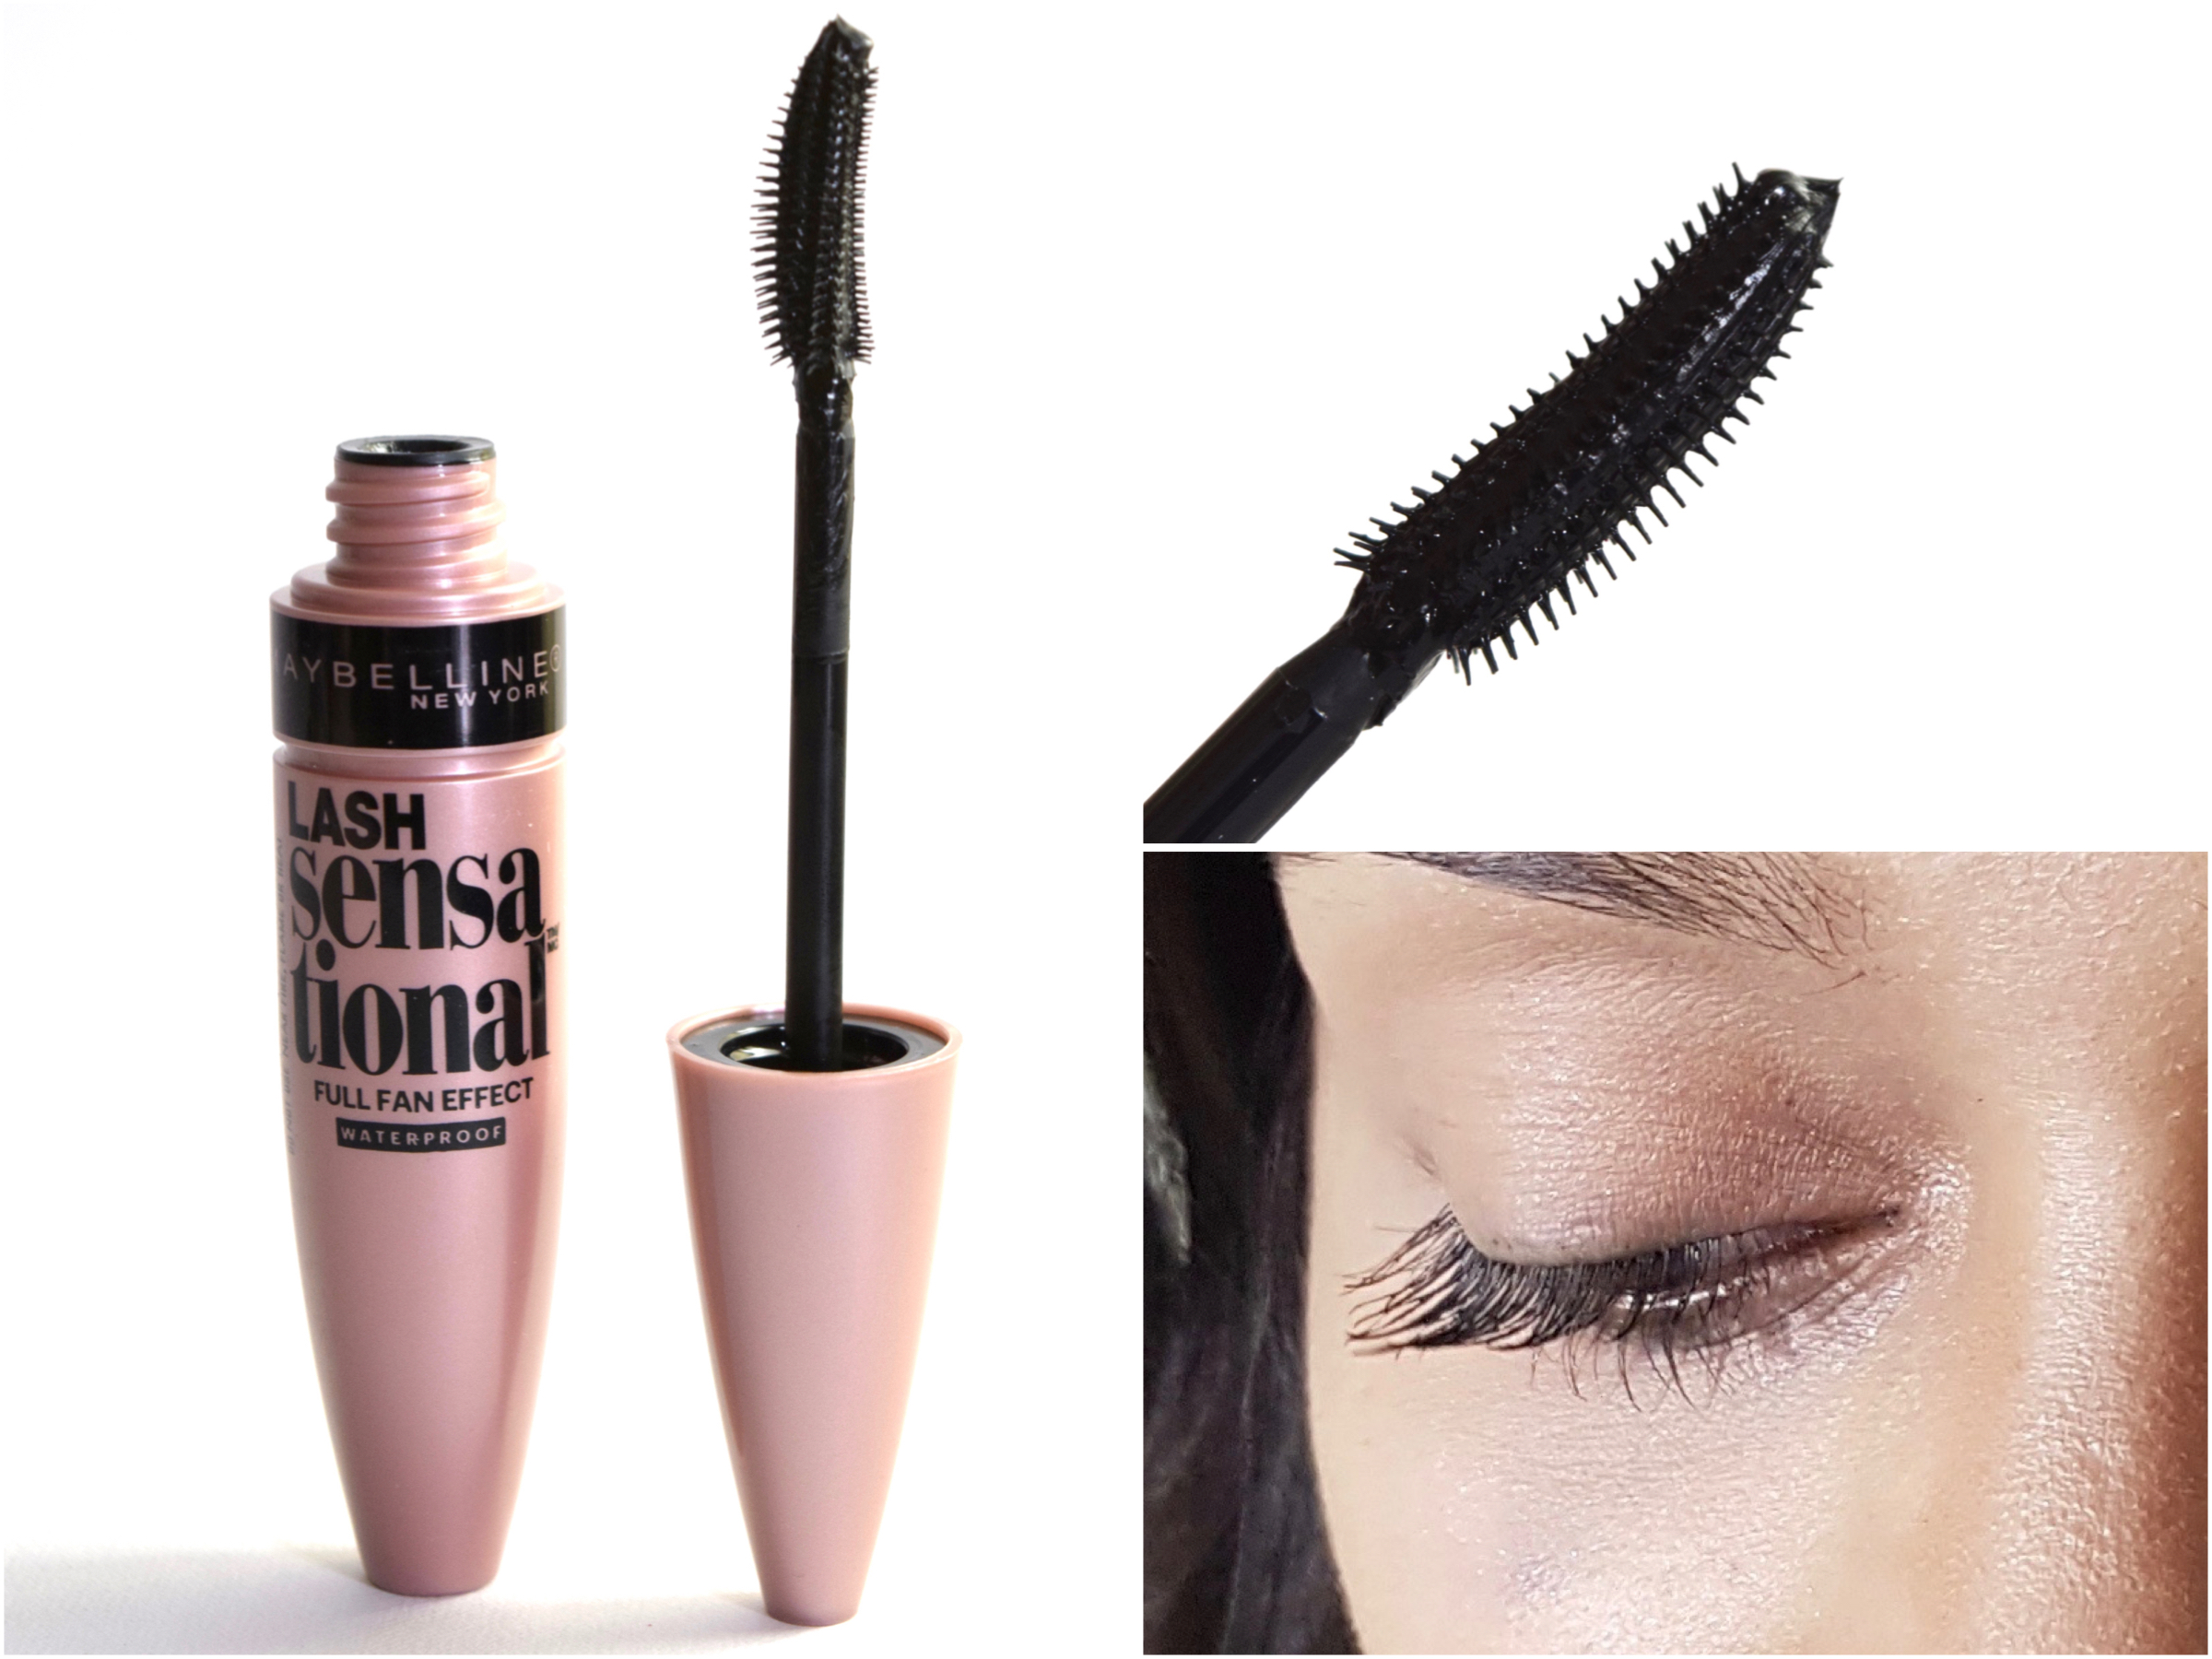 7db09eacbdd Maybelline Lash Sensational Mascara Review, Swatches